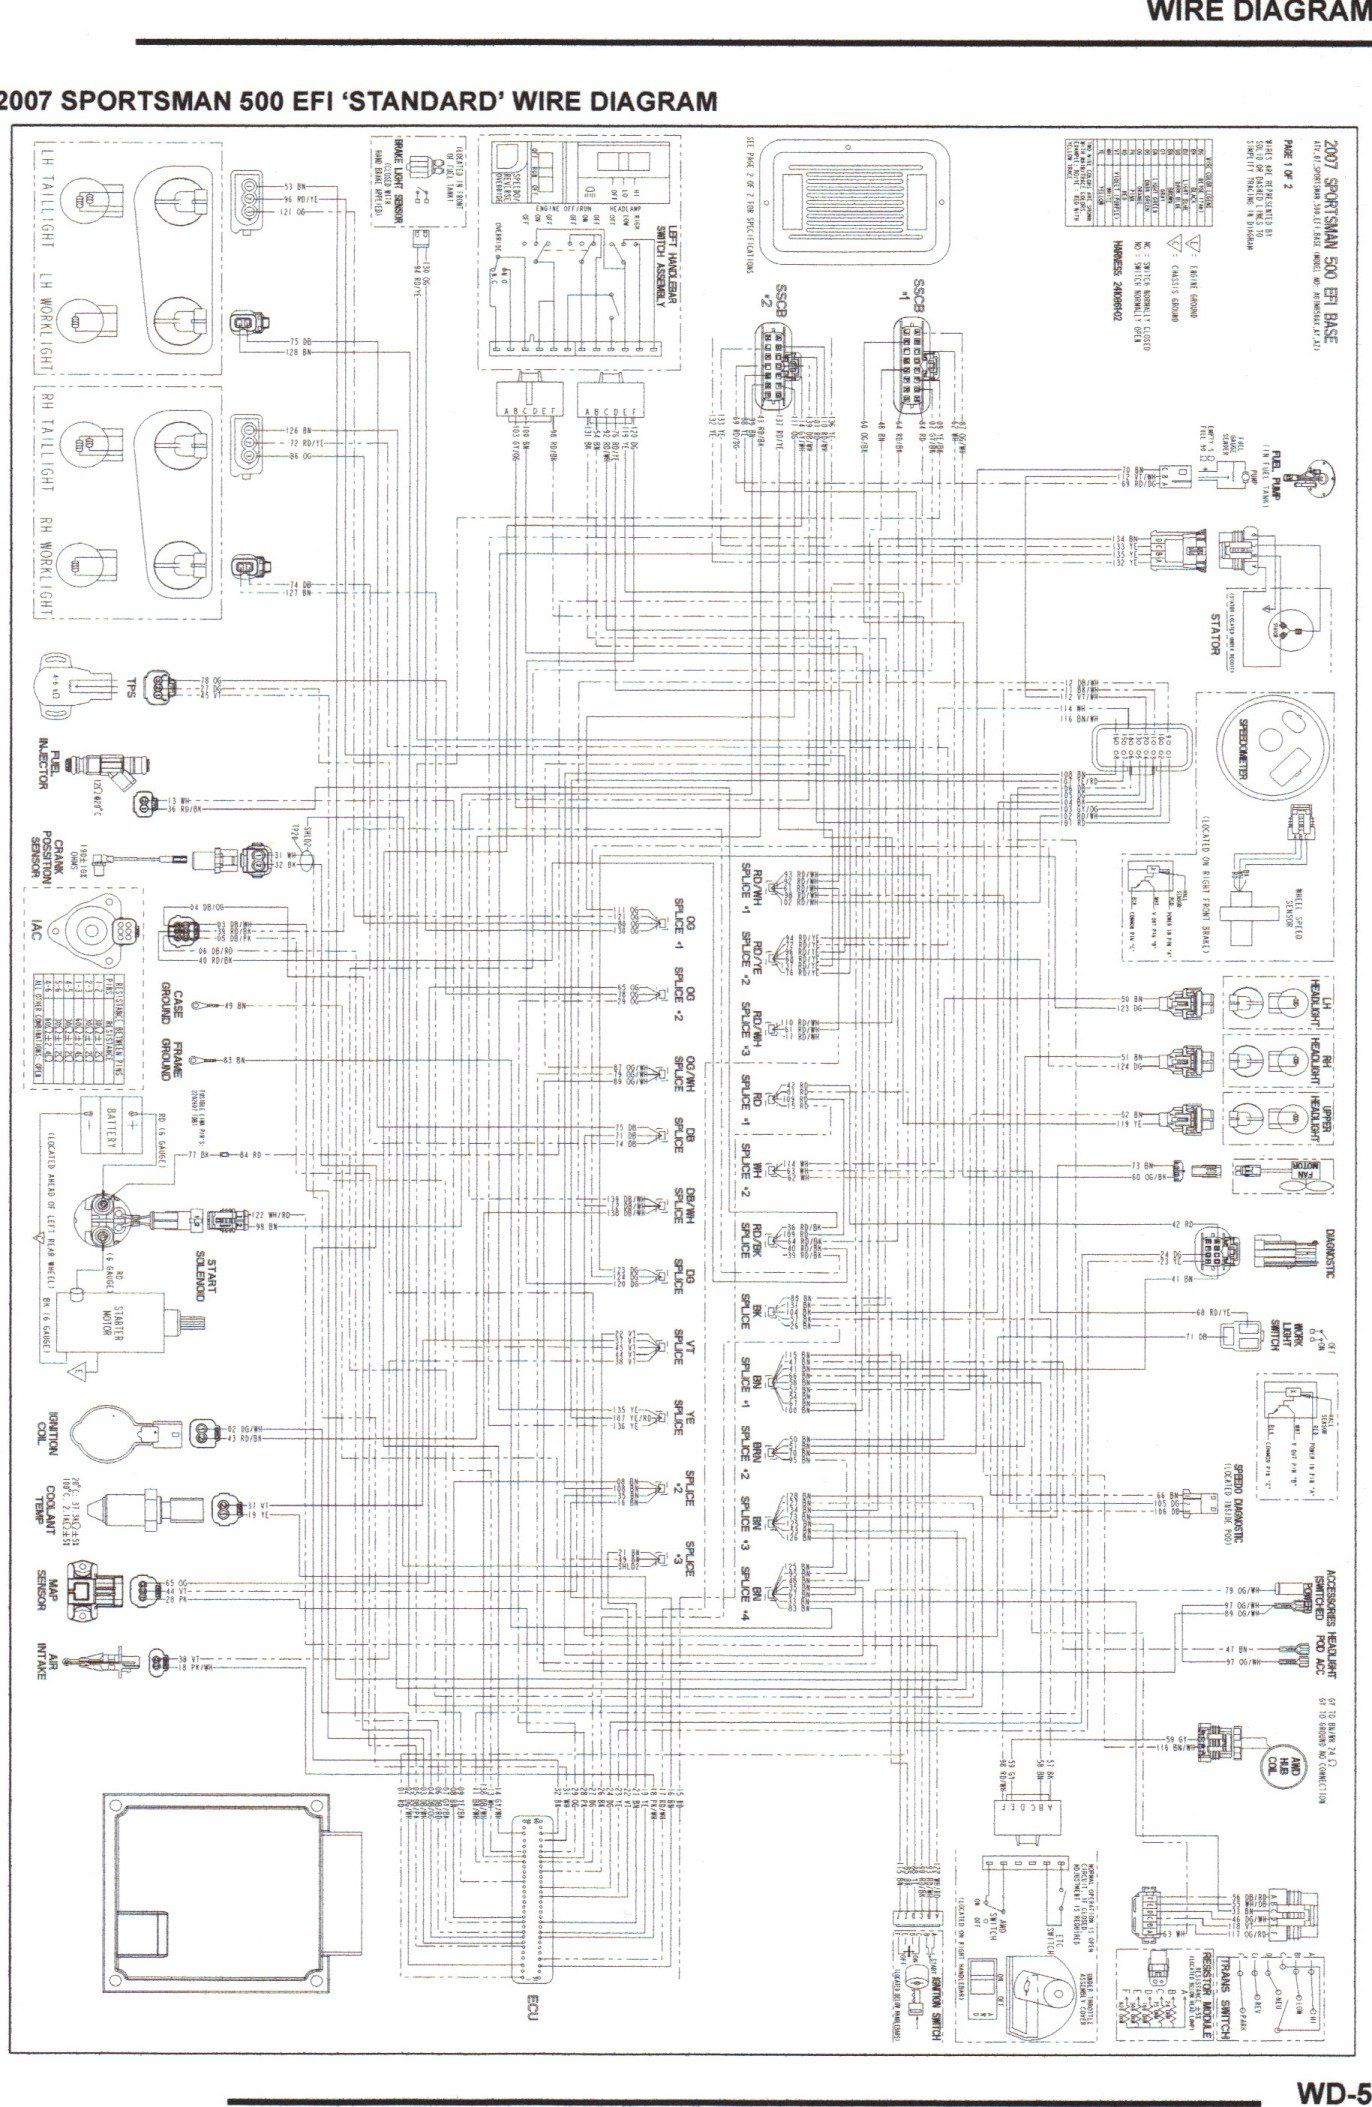 05 polaris atv wiring diagram wiring diagram for you polaris sportsman 500 wiring schematics 02 polaris [ 1372 x 2107 Pixel ]